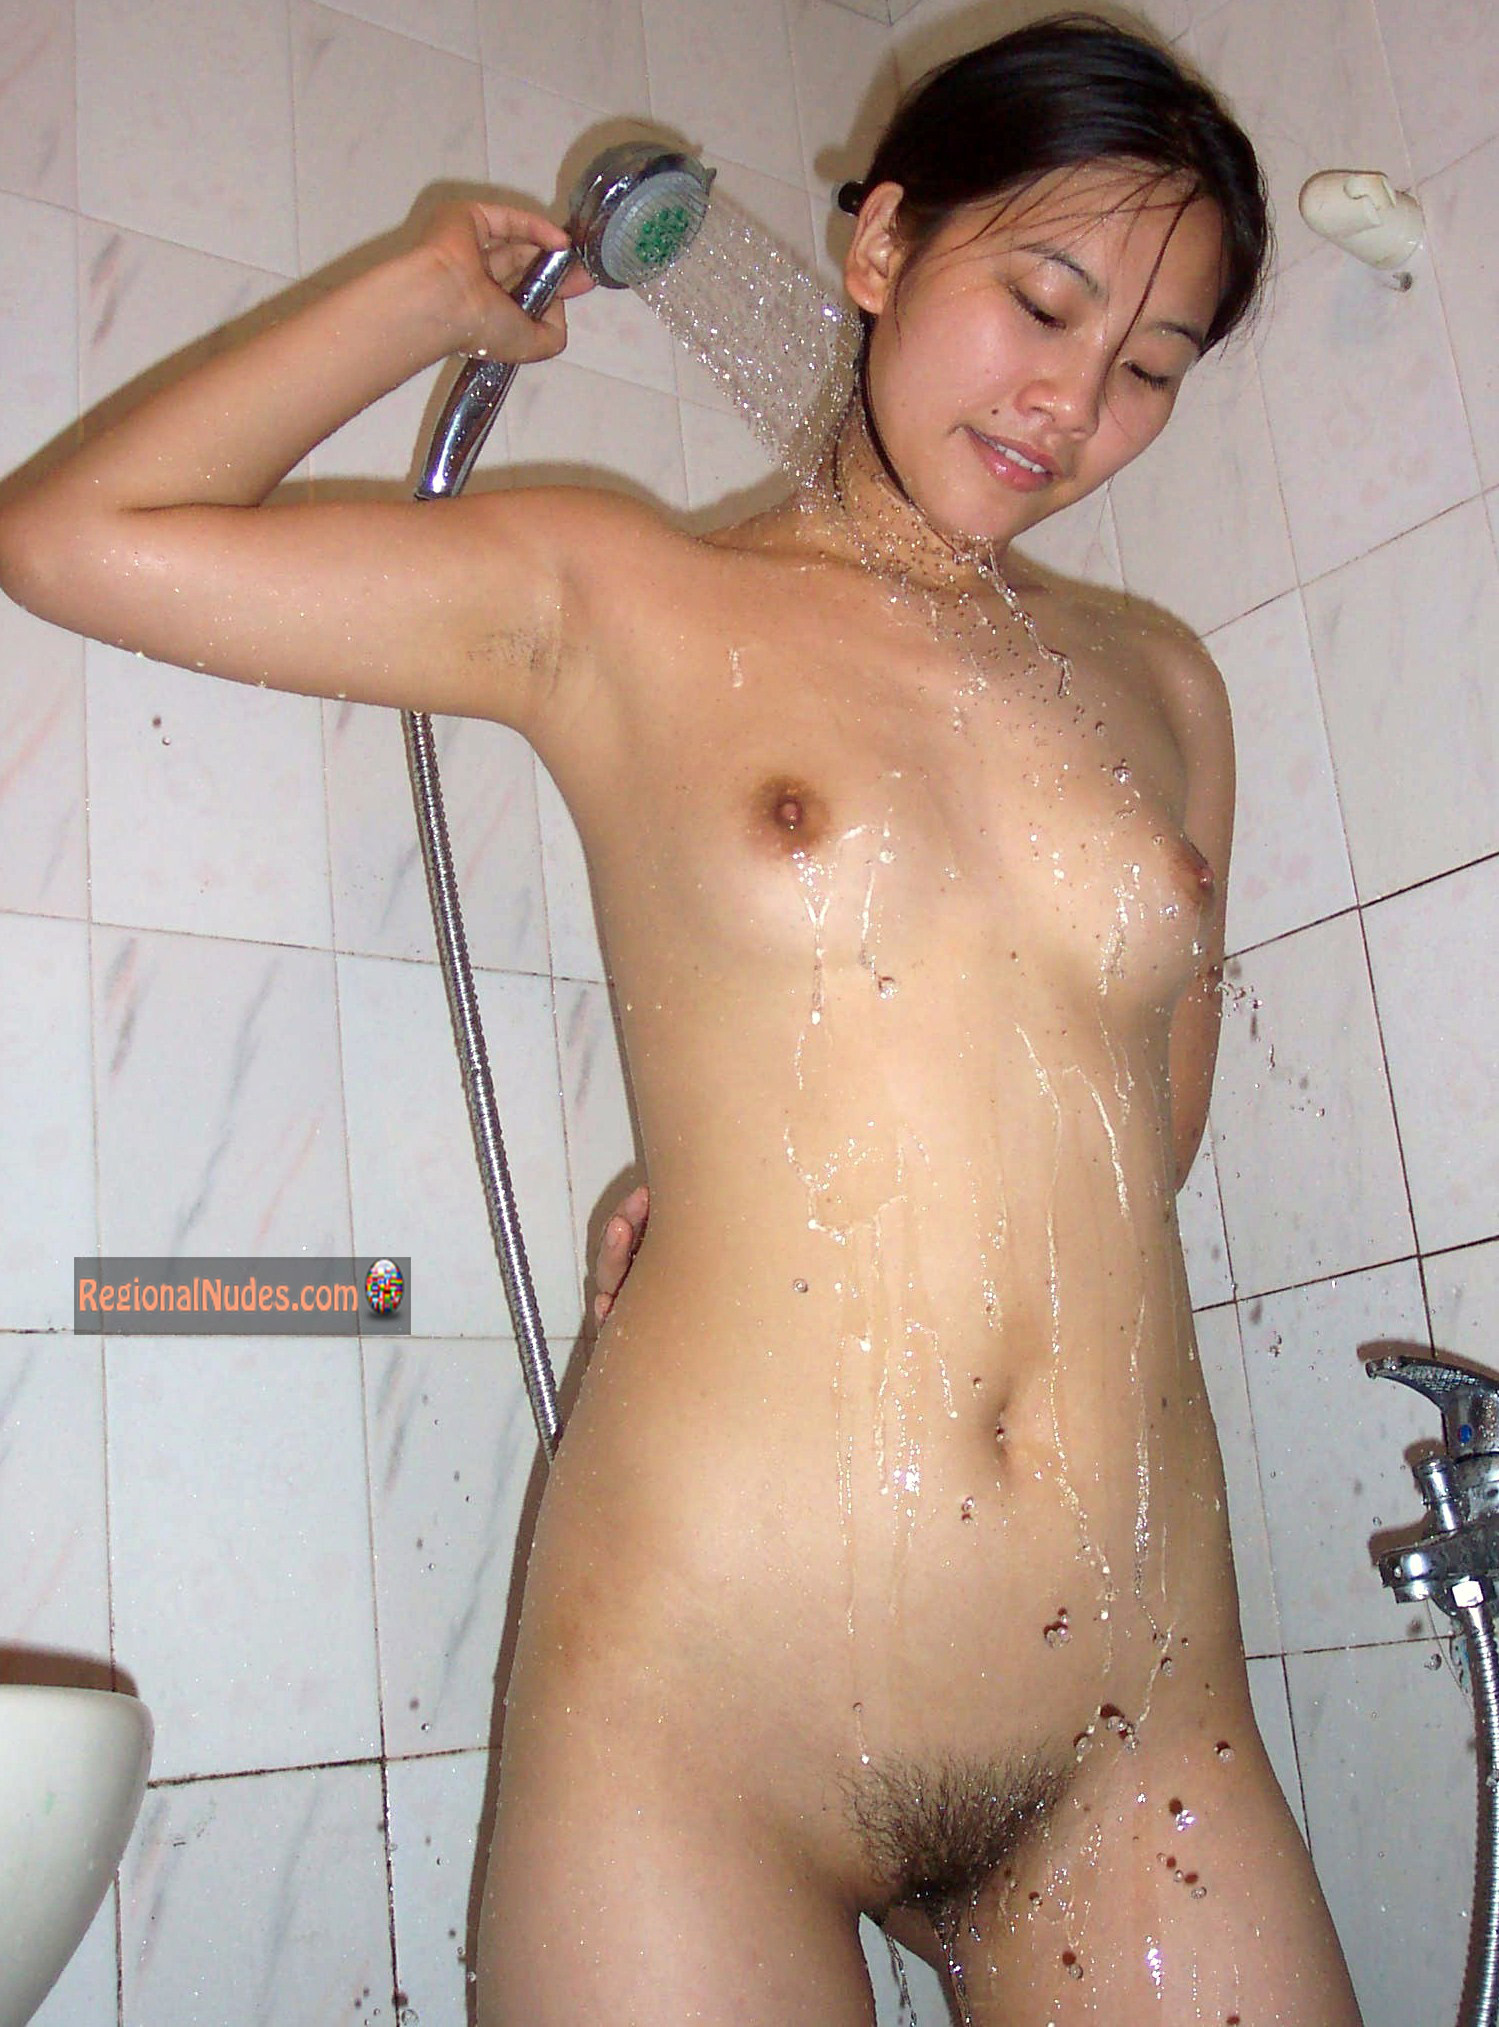 Photos of naked girls in the shower